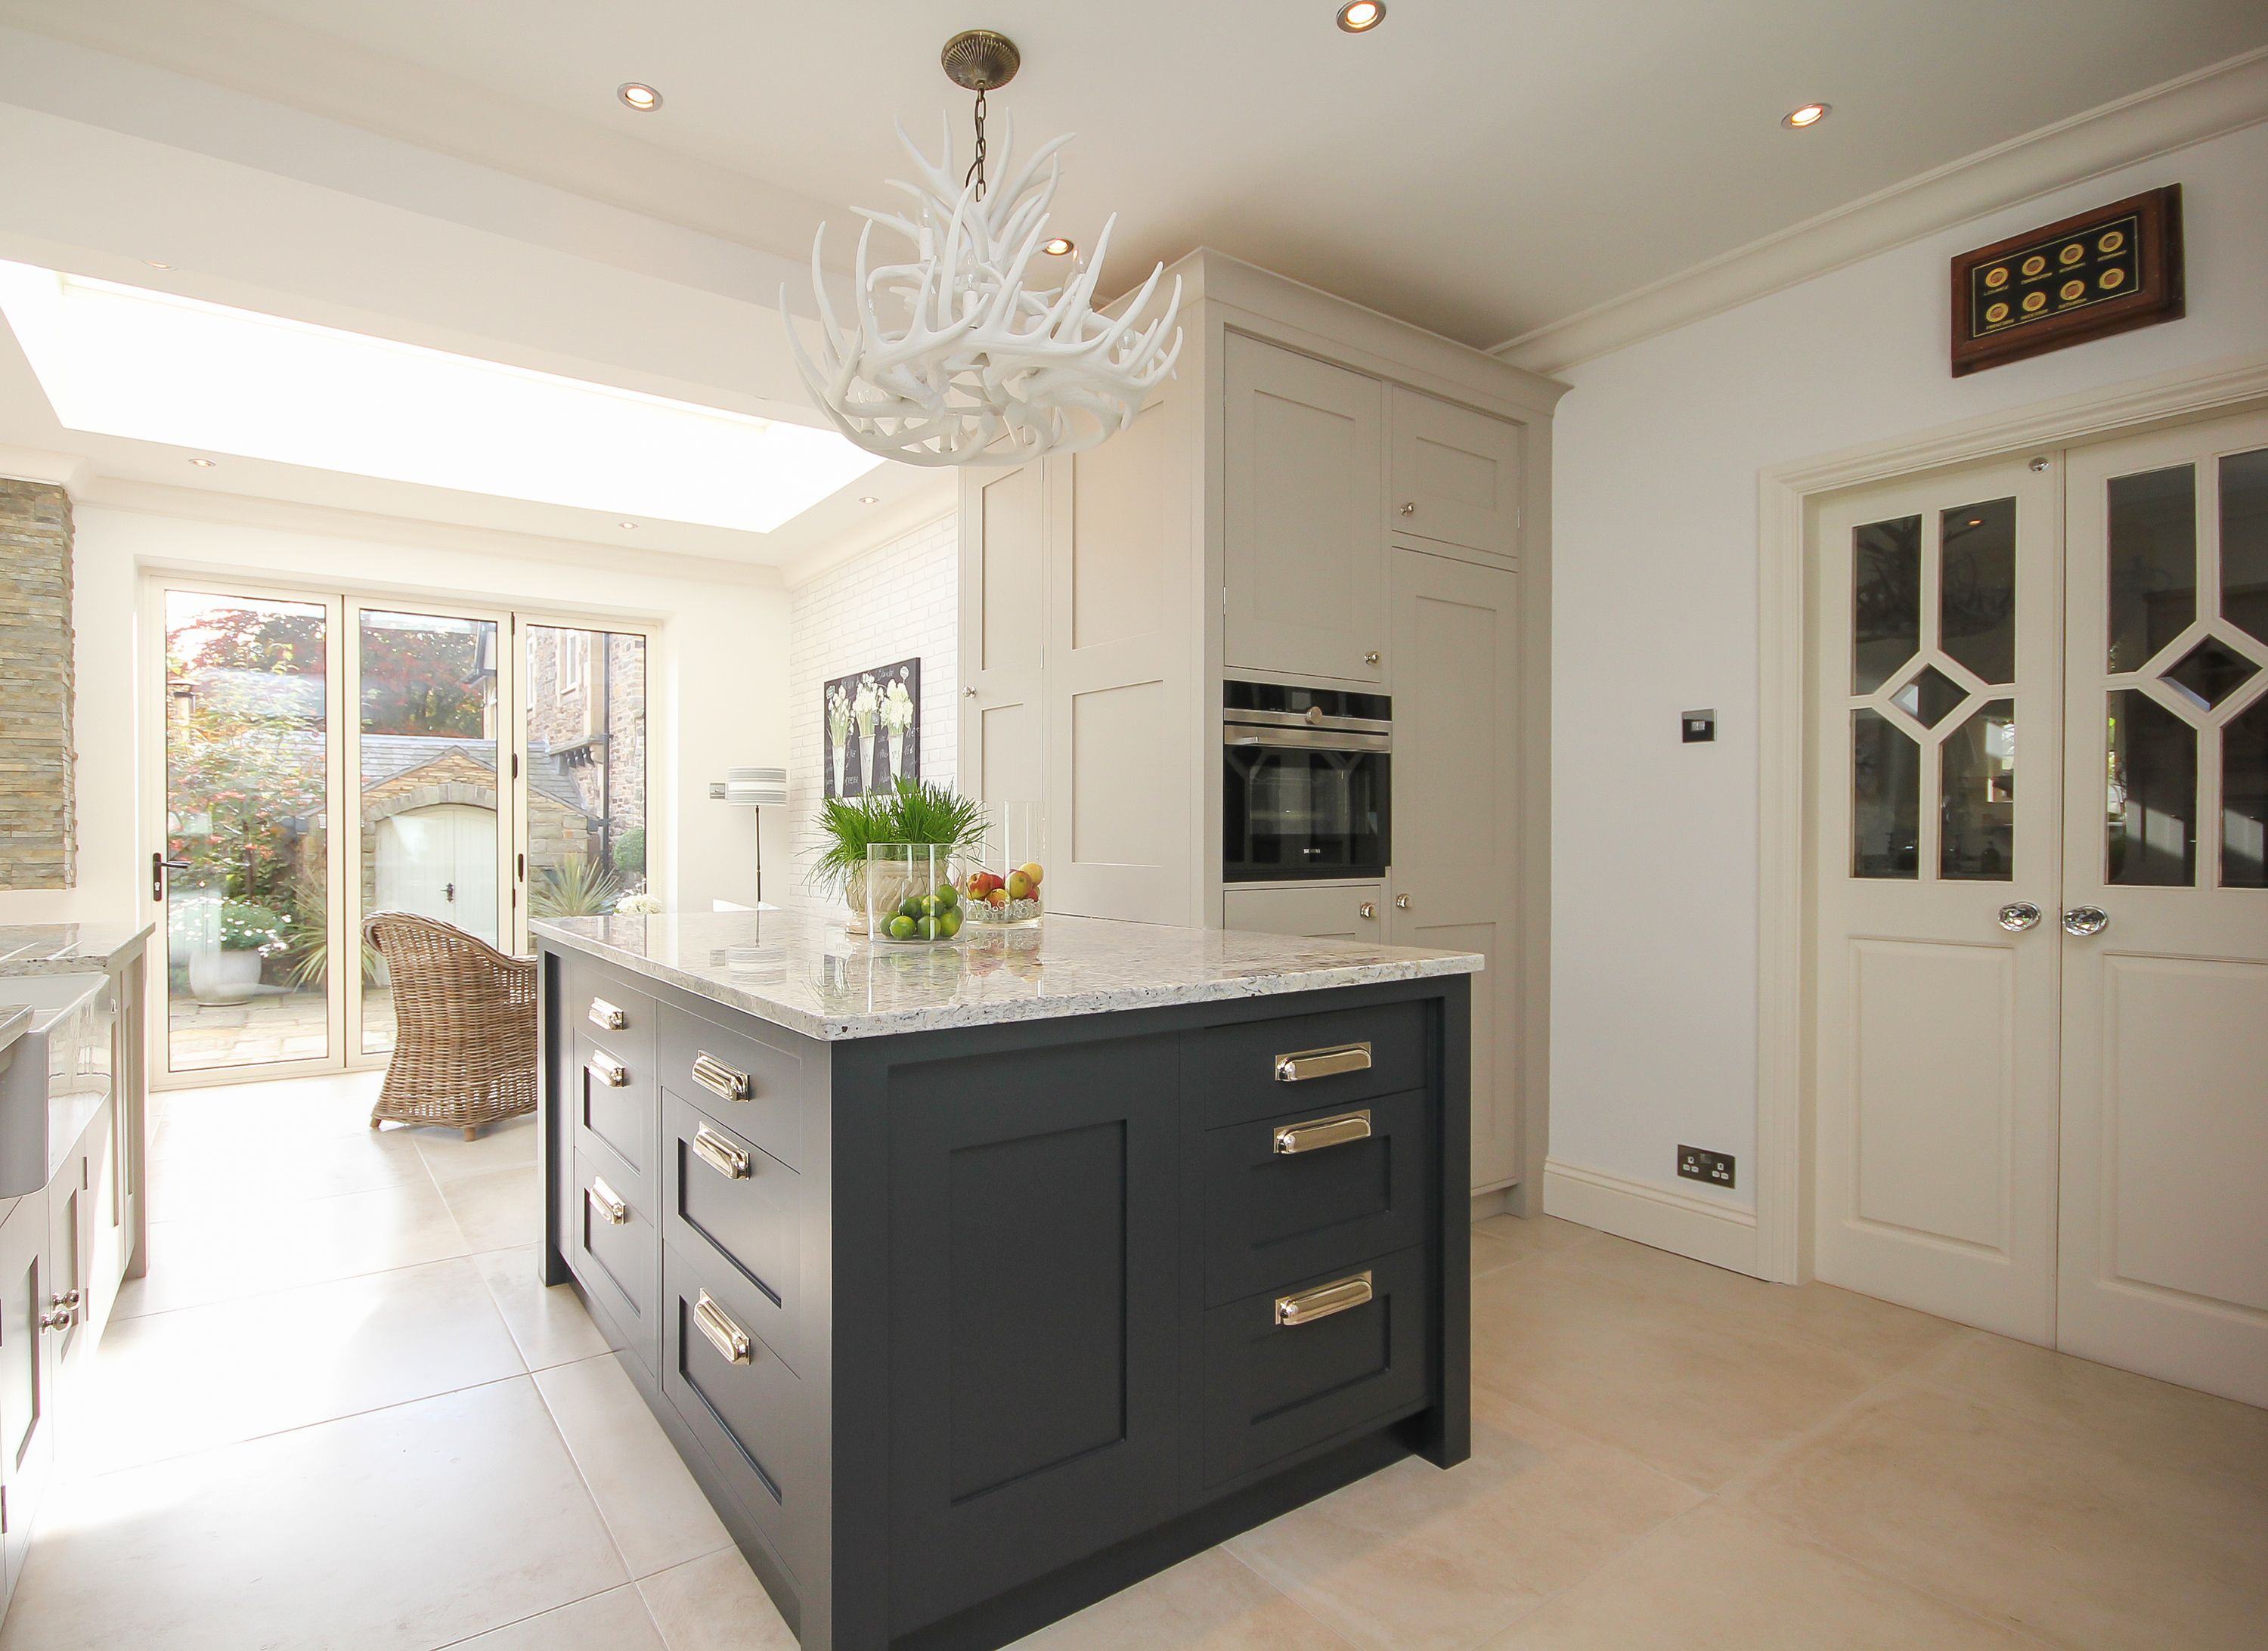 Purbeck Stone Farrow And Ball Kitchen Year Of Clean Water